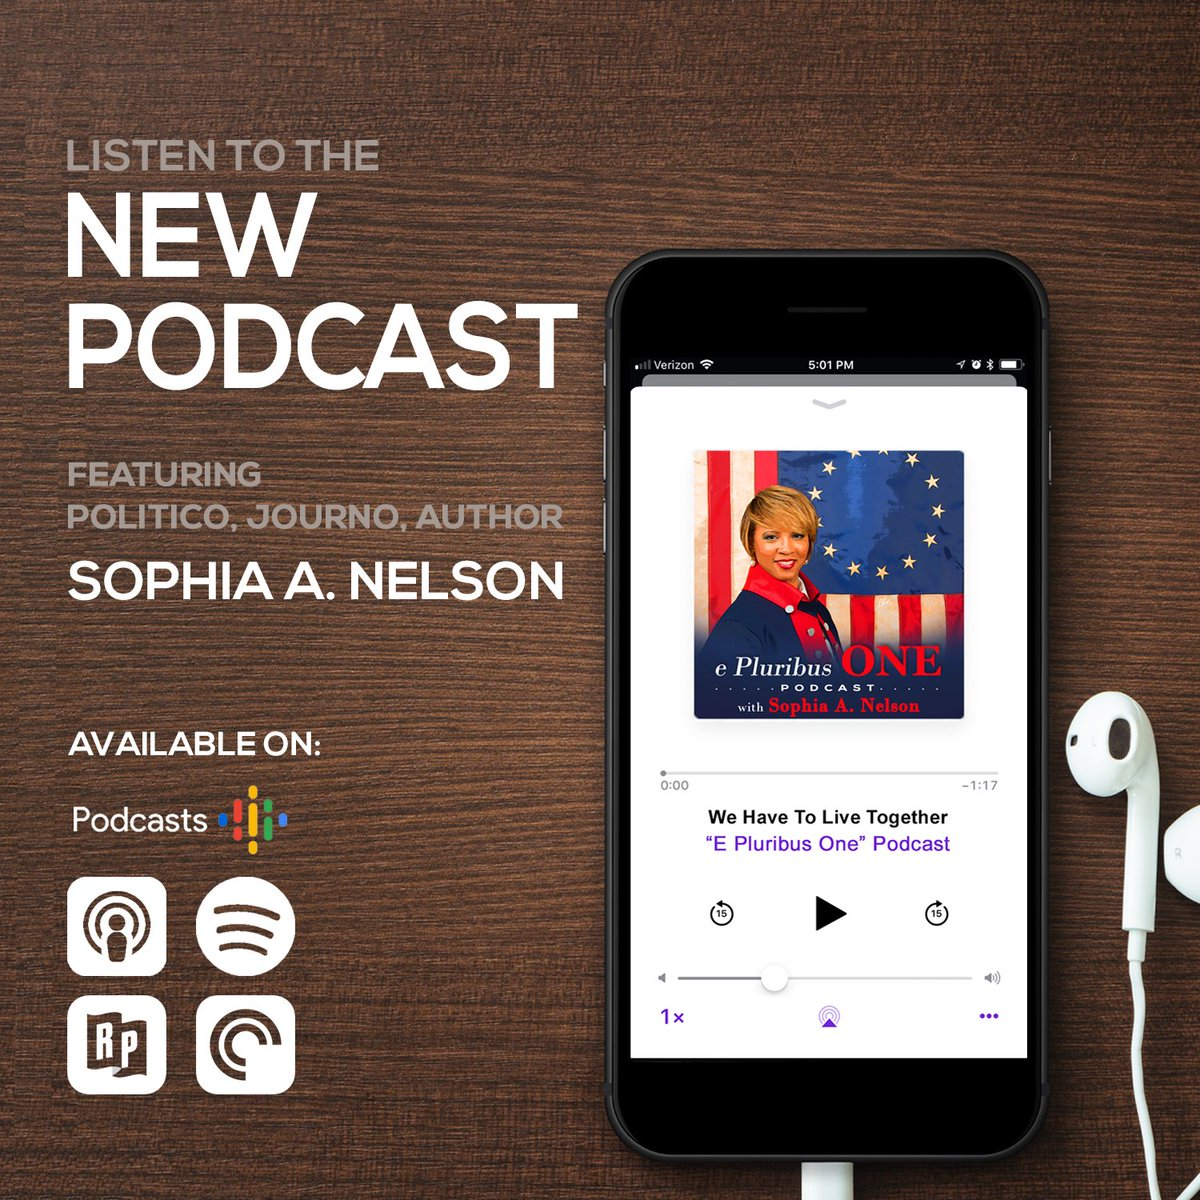 Please check out @IAmSophiaNelson latest venture. Her new #podcast #epluribusone it's LIVE now. Four episodes playing with the newest episode released this morning, Sunday, August 25, 2019. <br>http://pic.twitter.com/YSmoDwEC54